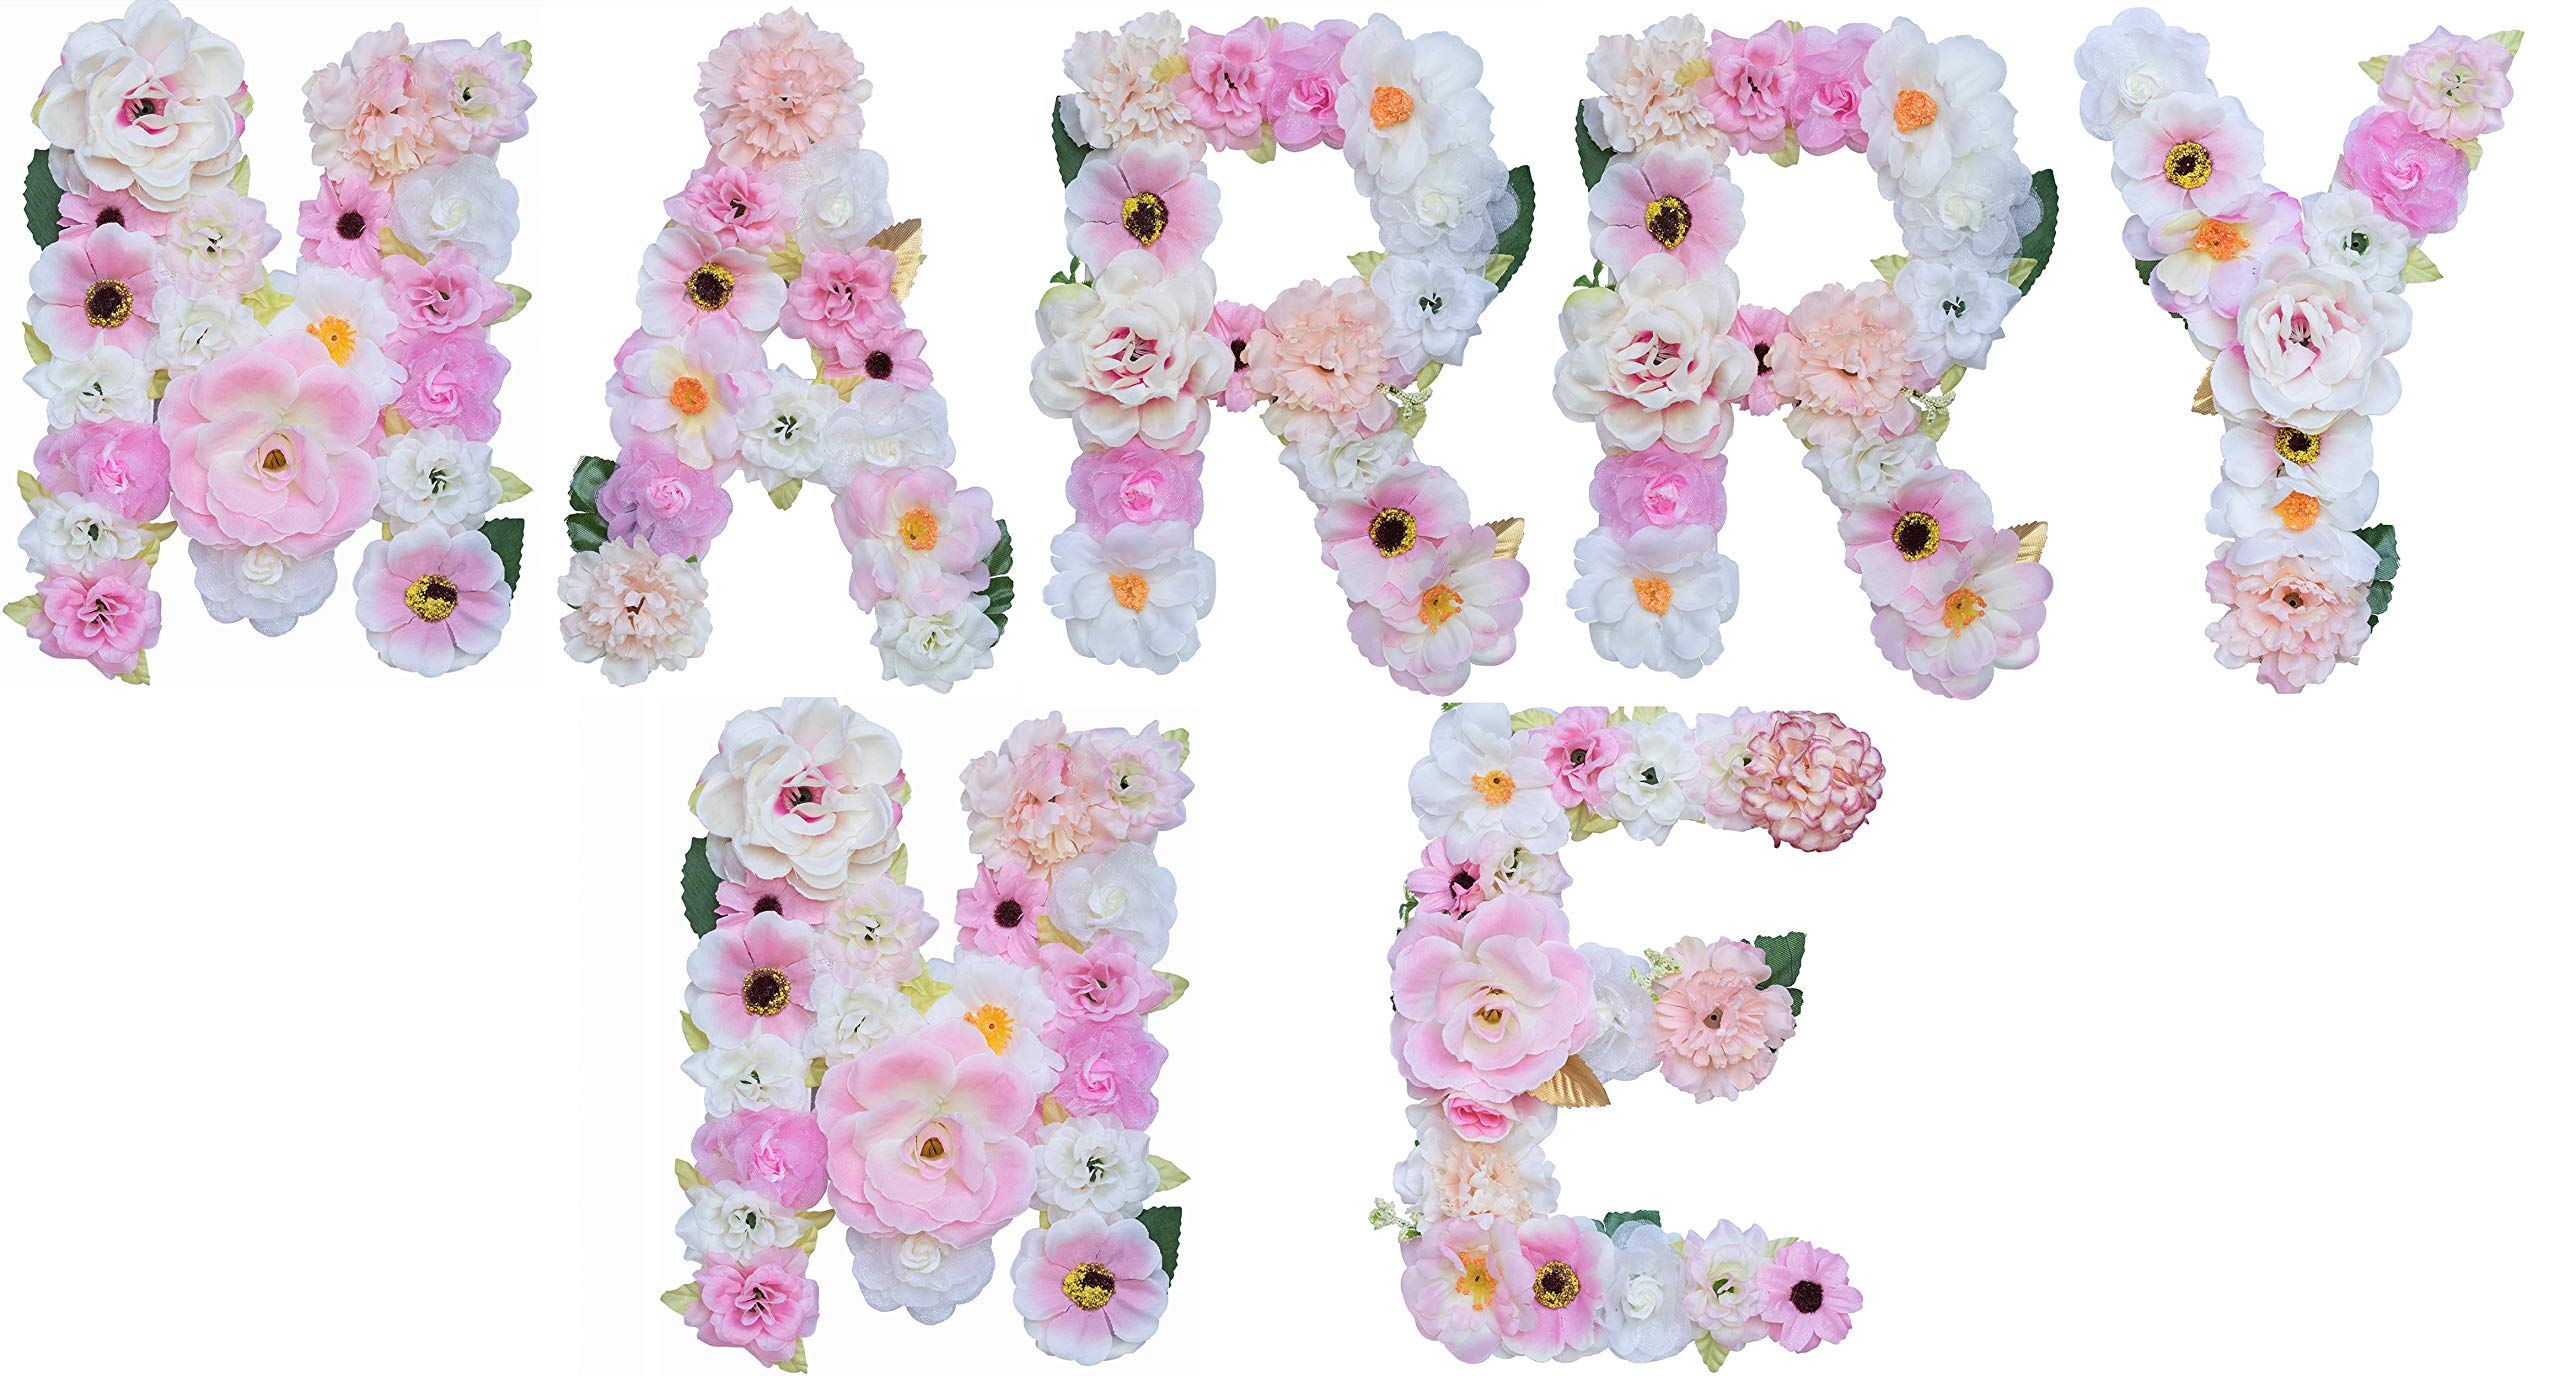 ZHENHAN Artificial Pink Floral Decorative Letters, 7.9''x5.5''x1.1'', Alphabet Letters with Fake Flowers, for Bedroom/Living Room/Corridor/Front Door, for Special Occasion/Event (Combinations, Marry ME)